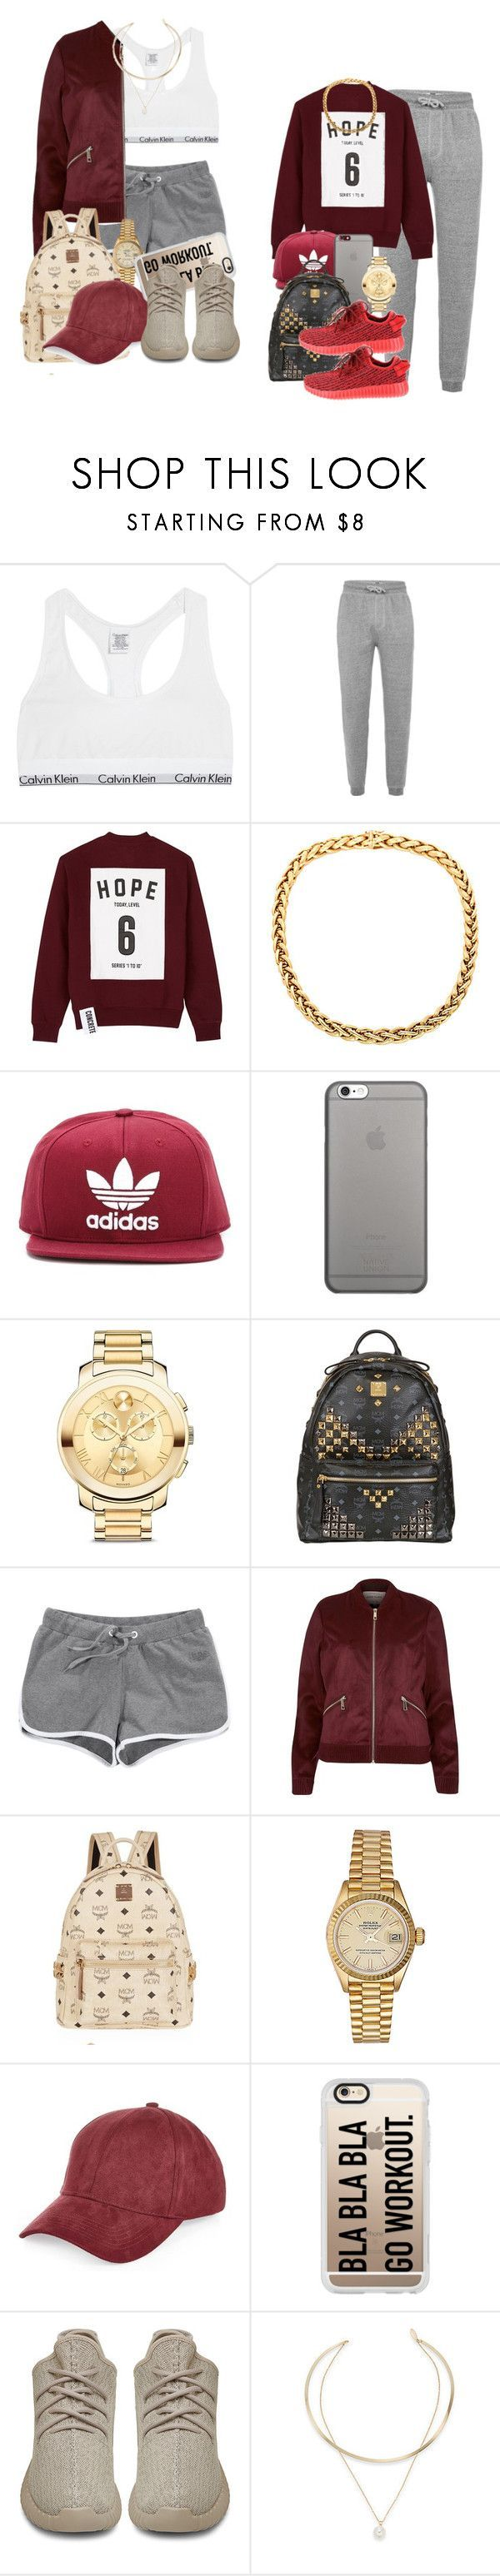 """#53"" by nnueyrizer ❤ liked on Polyvore featuring Calvin Klein Underwear, Topman, Studio Concrete, adidas Originals, Native Union, Movado, MCM, adidas, River Island and Rolex Sale! Up to 75% OFF! Shop at Stylizio for women's and men's designer handbags, luxury sunglasses, watches, jewelry, purses, wallets, clothes, underwear & more!"